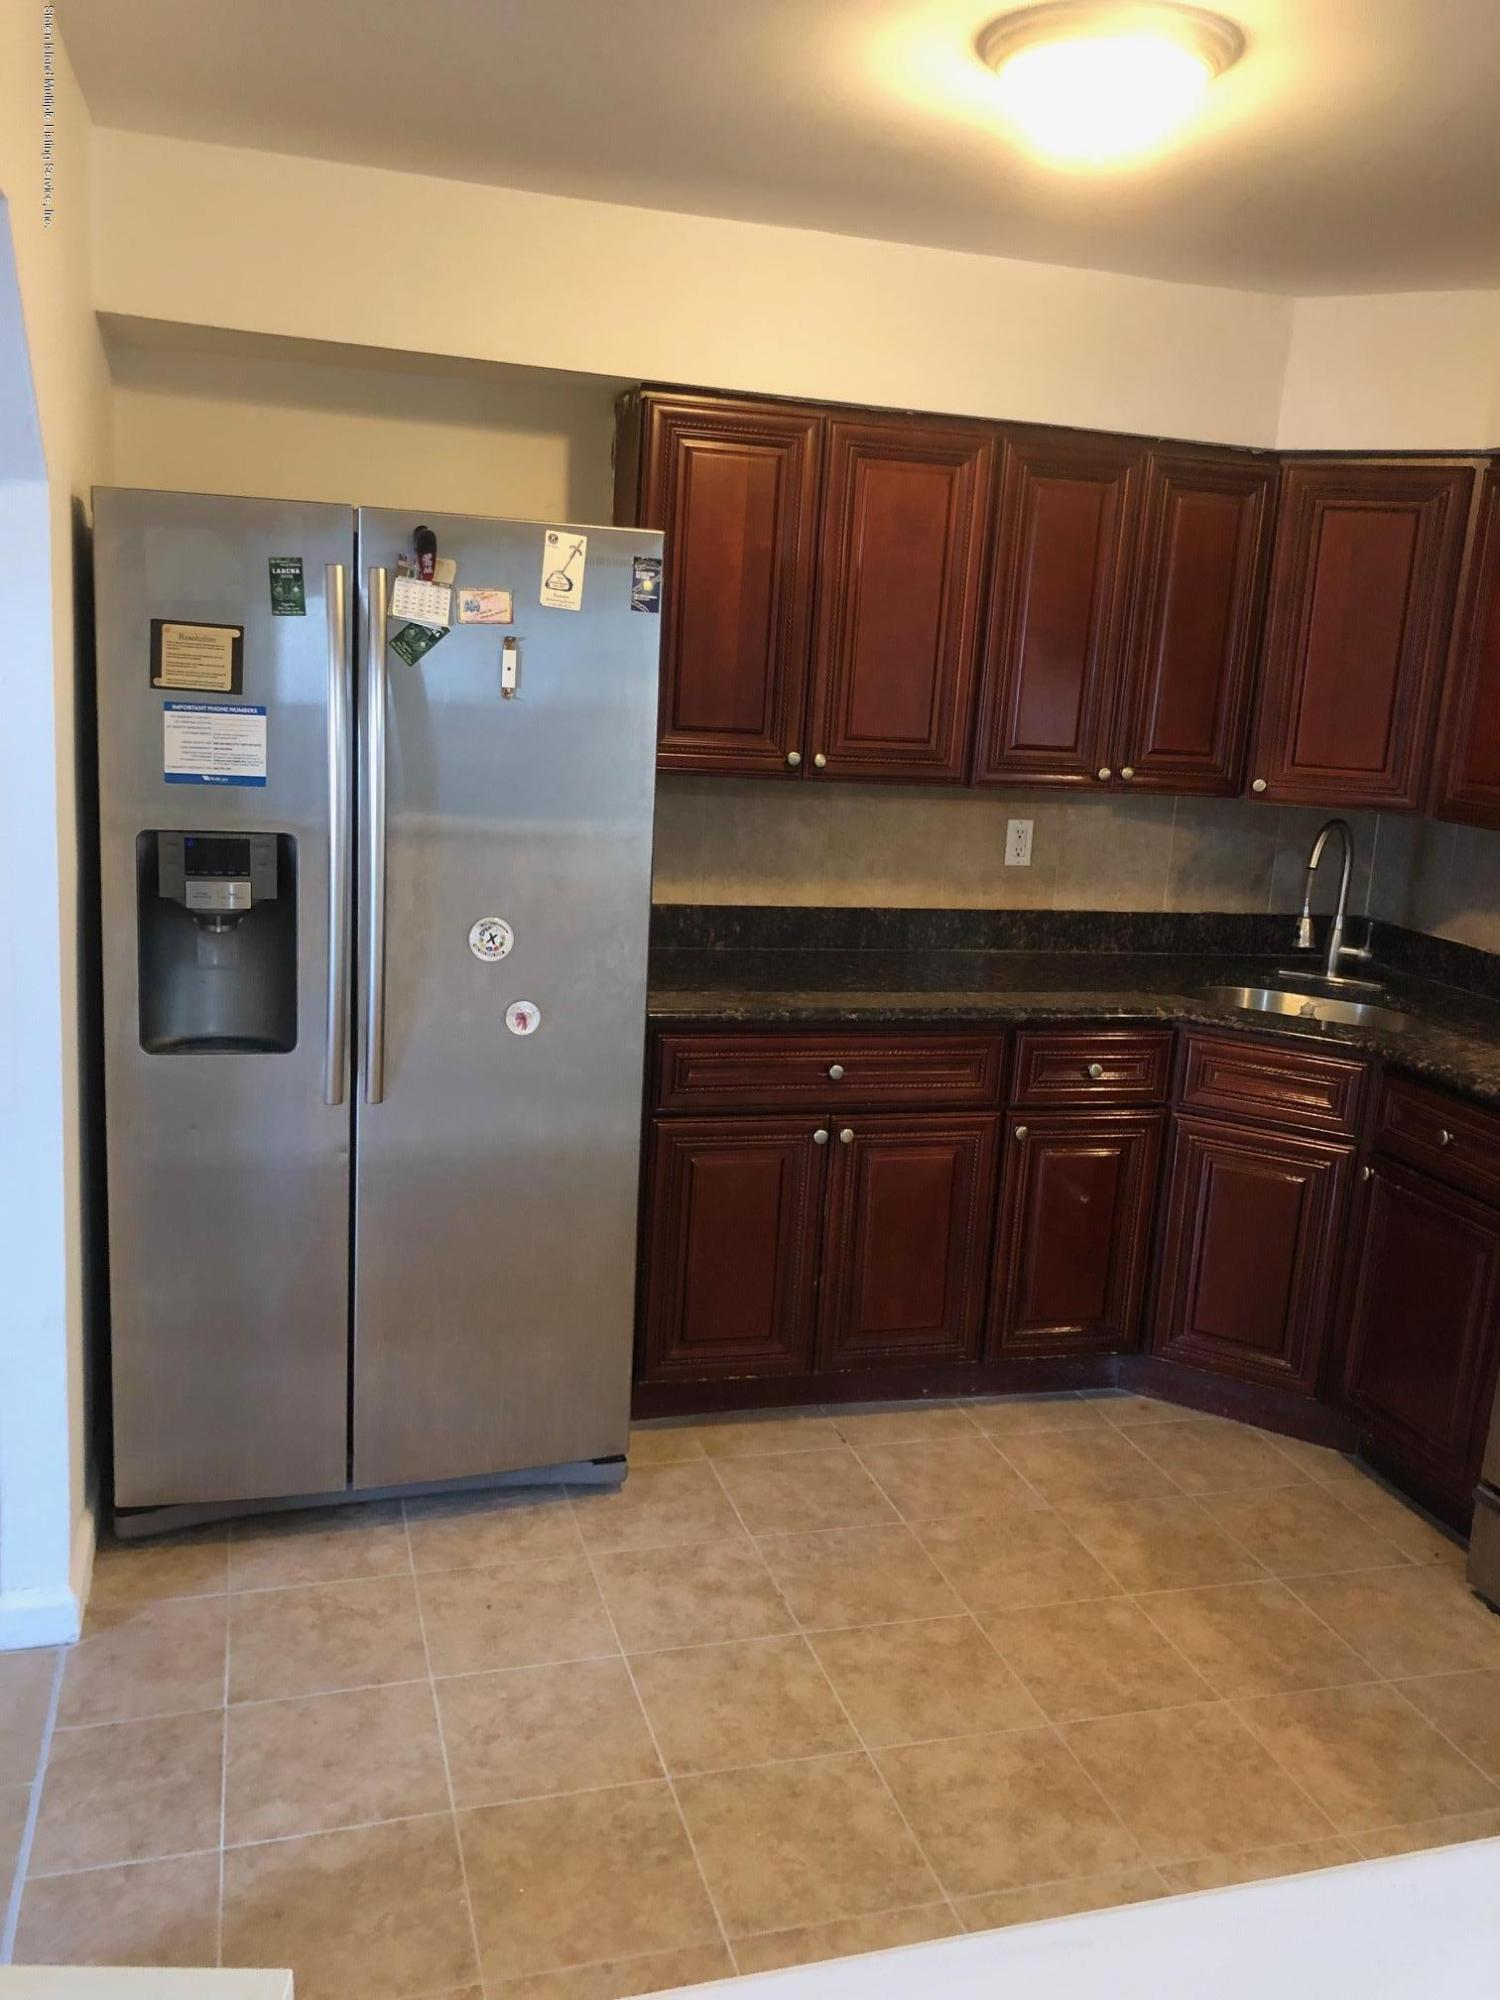 79 Gary Court,Staten Island,New York,10314,United States,5 Bedrooms Bedrooms,8 Rooms Rooms,2 BathroomsBathrooms,Res-Rental,Gary,1130801